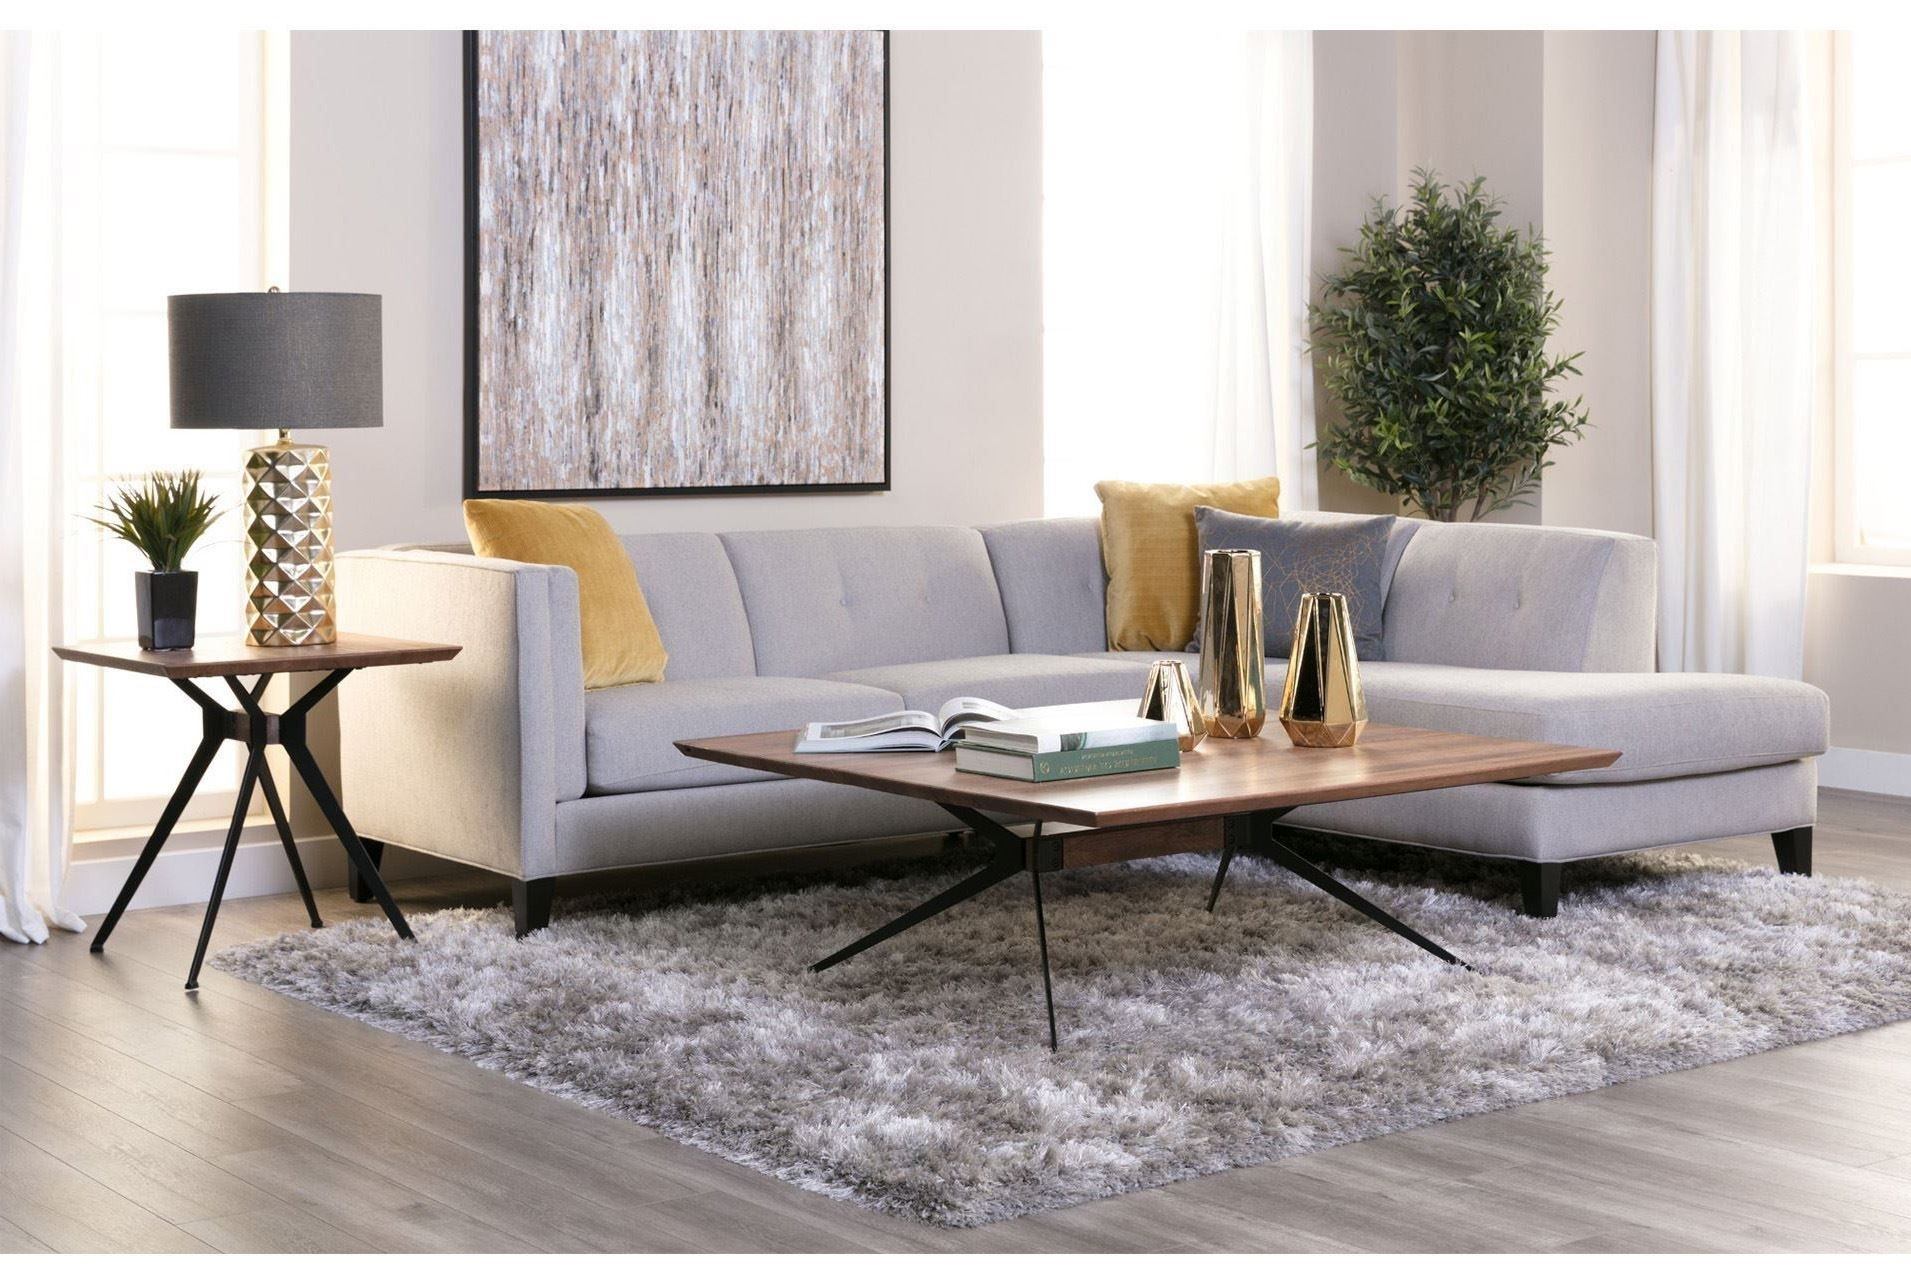 Avery 2 Piece Sectional W/raf Armless Chaise, Grey, Sofas | Mid Pertaining To Aquarius Light Grey 2 Piece Sectionals With Raf Chaise (Image 9 of 25)